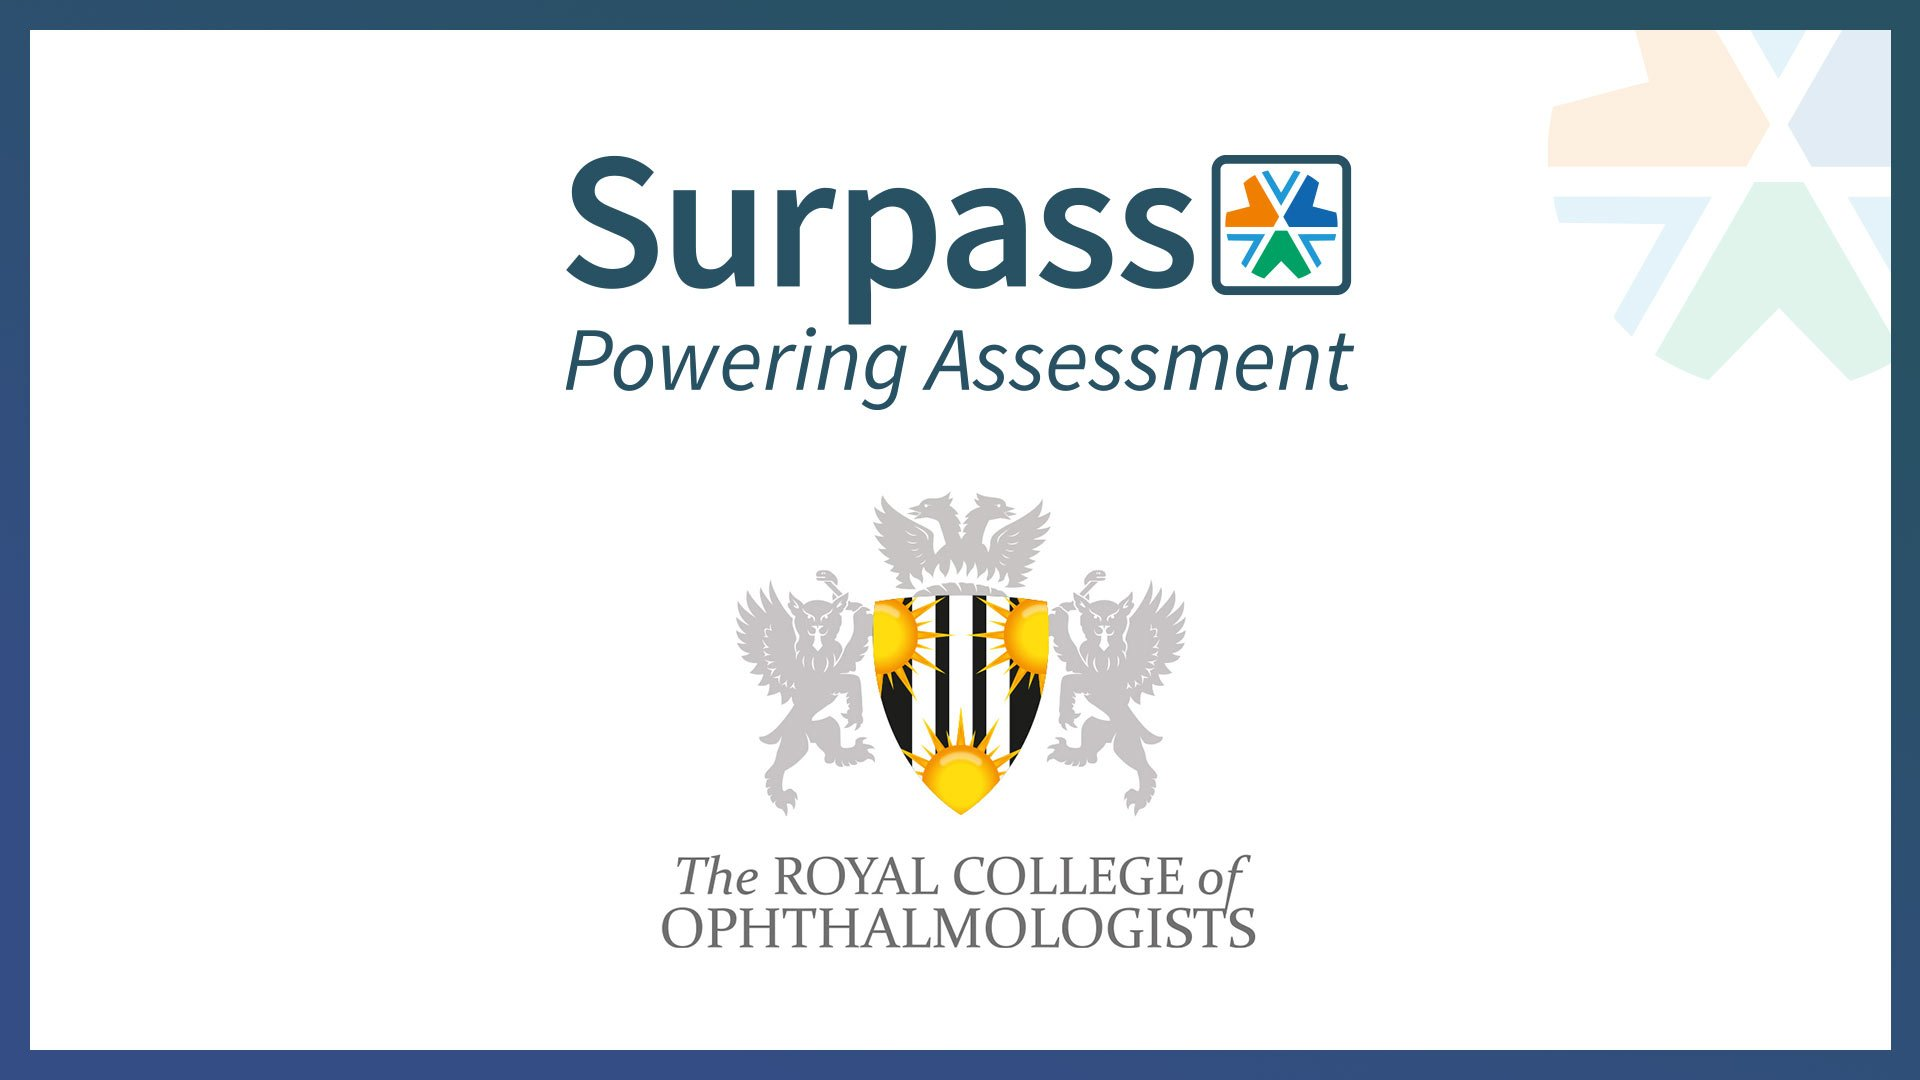 The Royal College of Ophthalmologists selects the Surpass online proctoring service